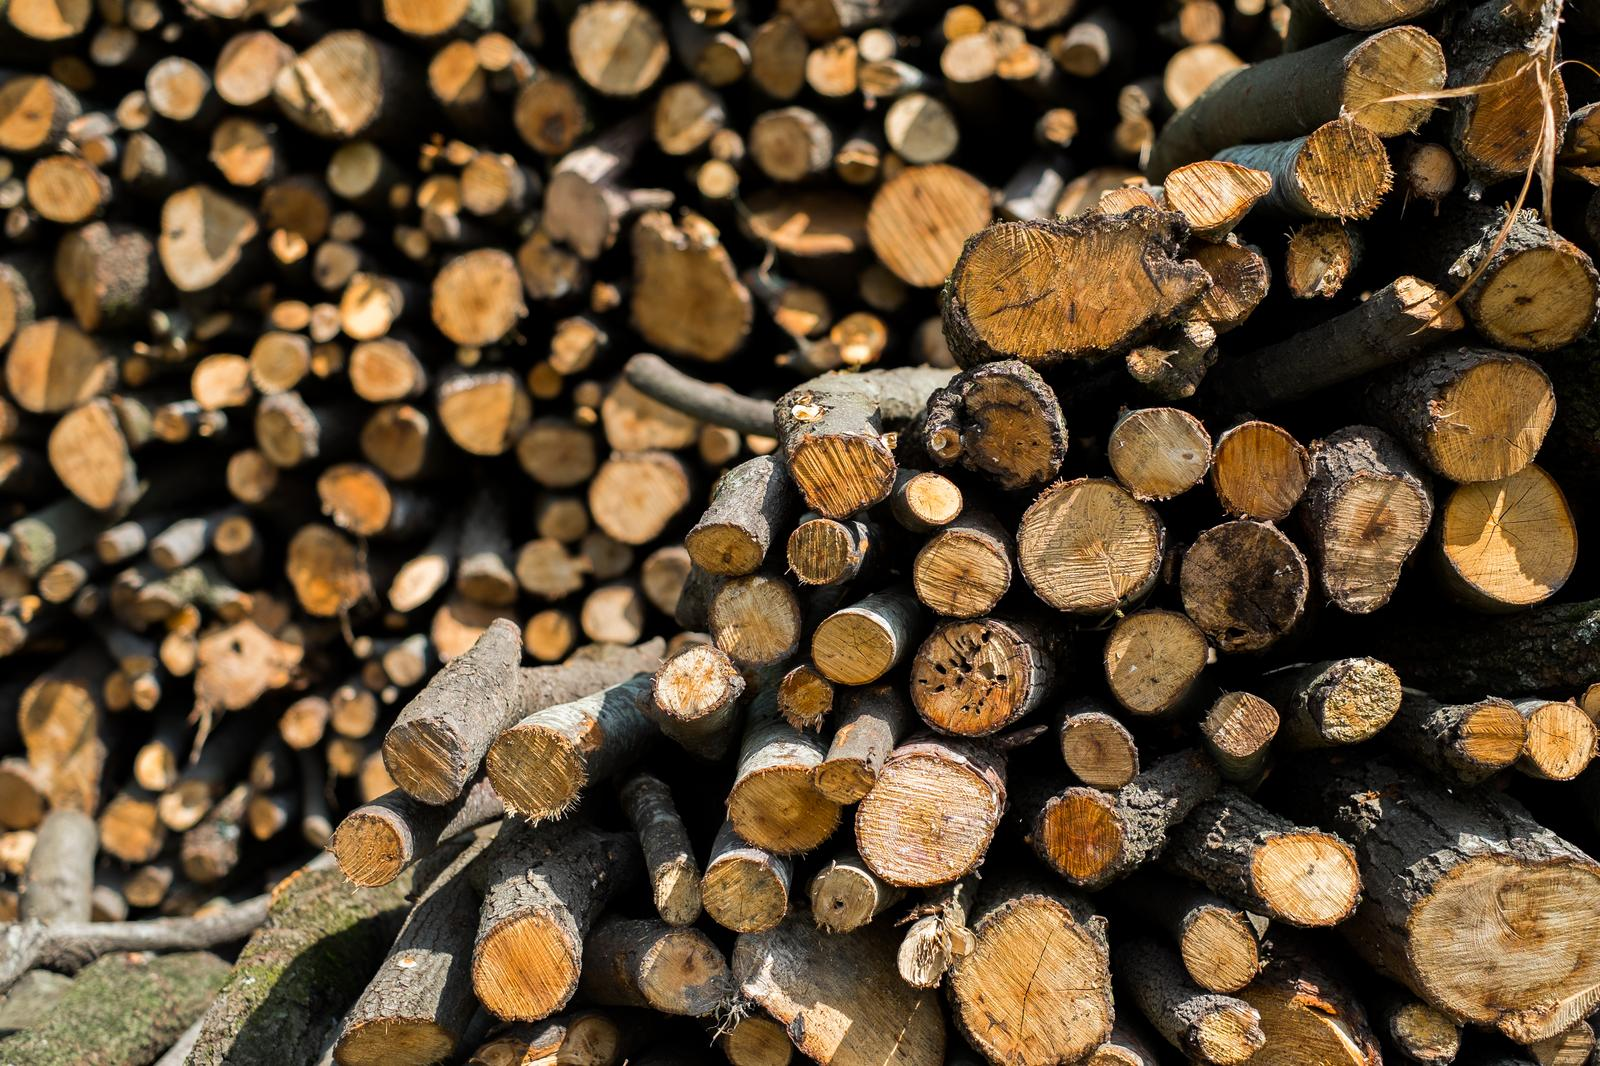 Silviculture and other forestry activities in Kuressaare